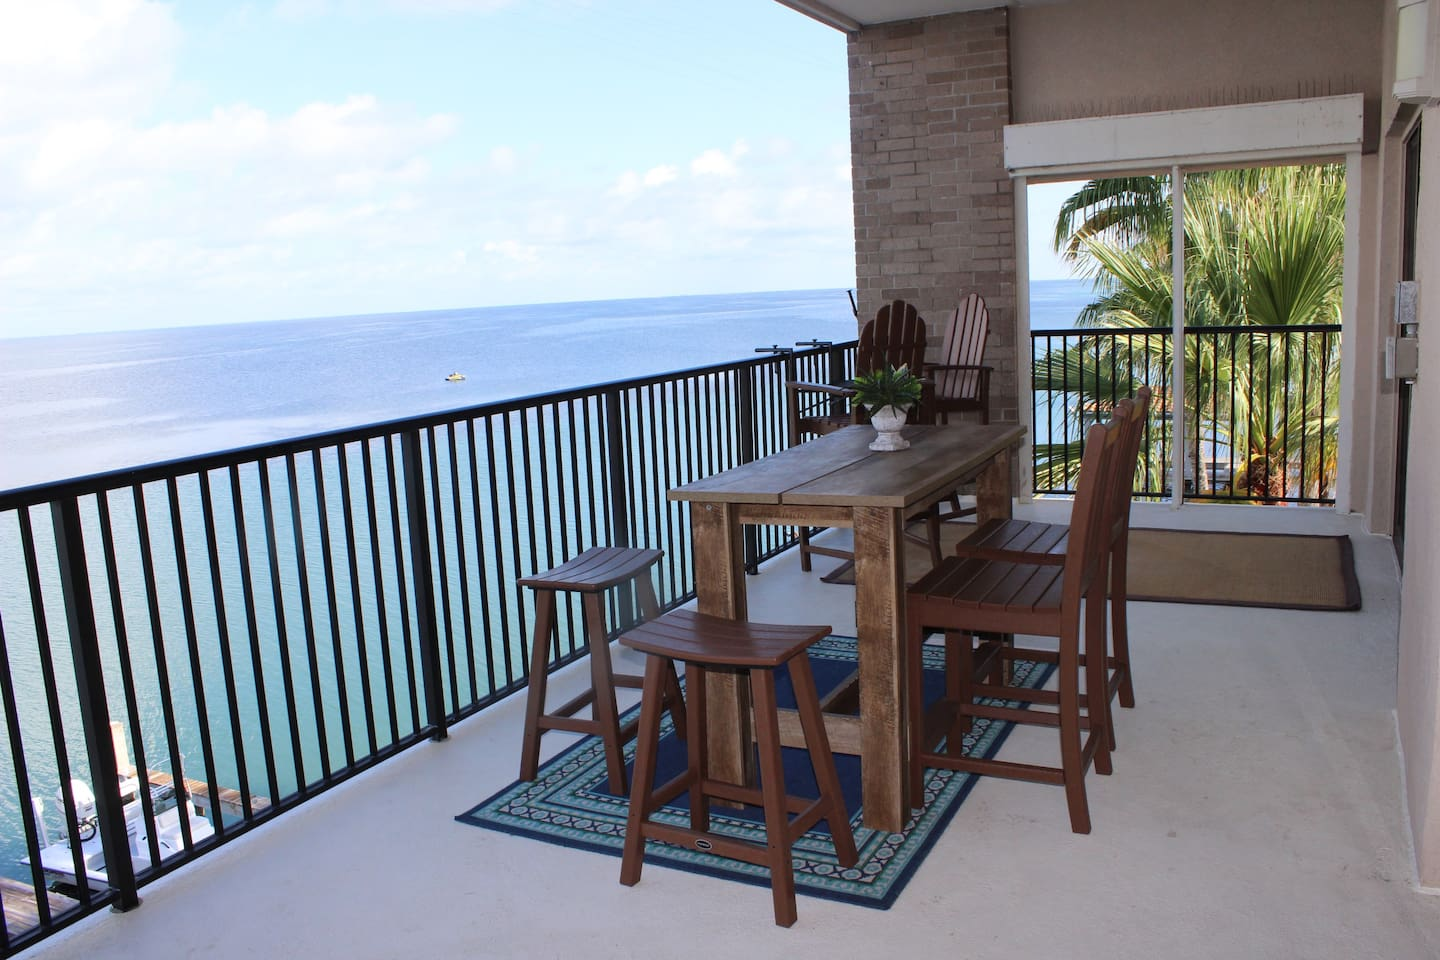 Private Balcony with seating for 6